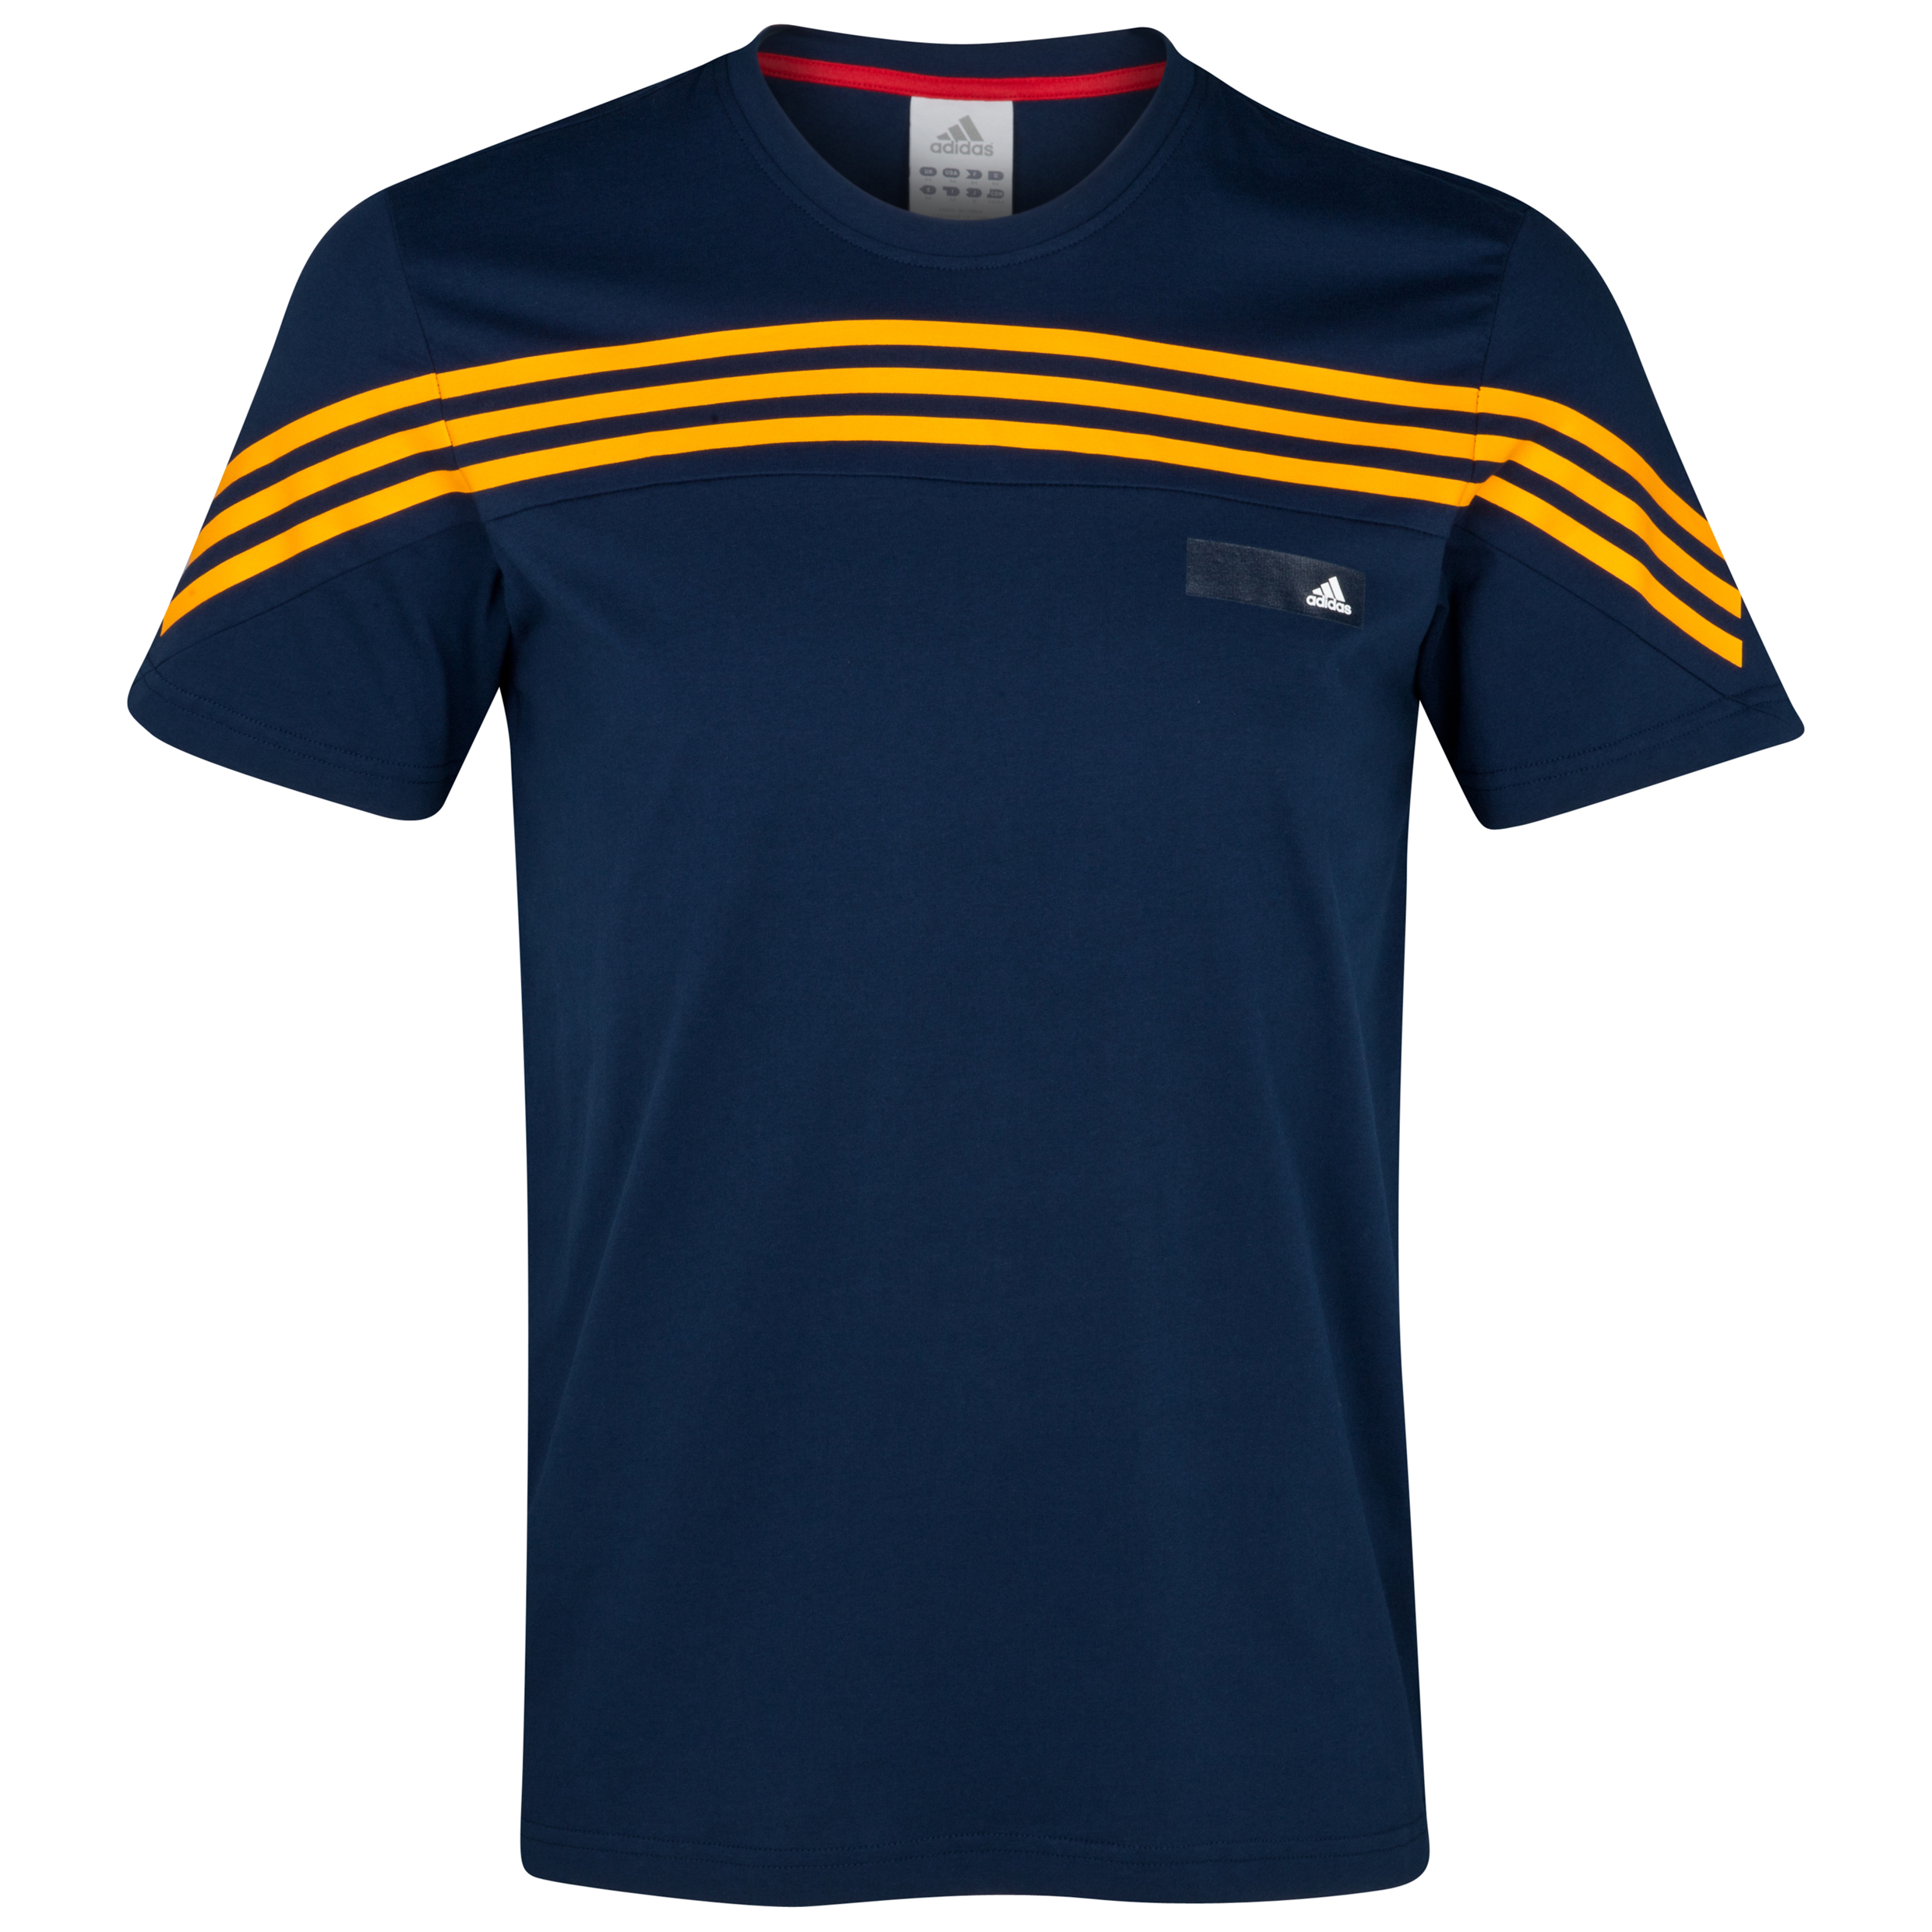 adidas 3 Stripe Short Sleeve T-Shirt - Dark Indigo/Collegiate Gold